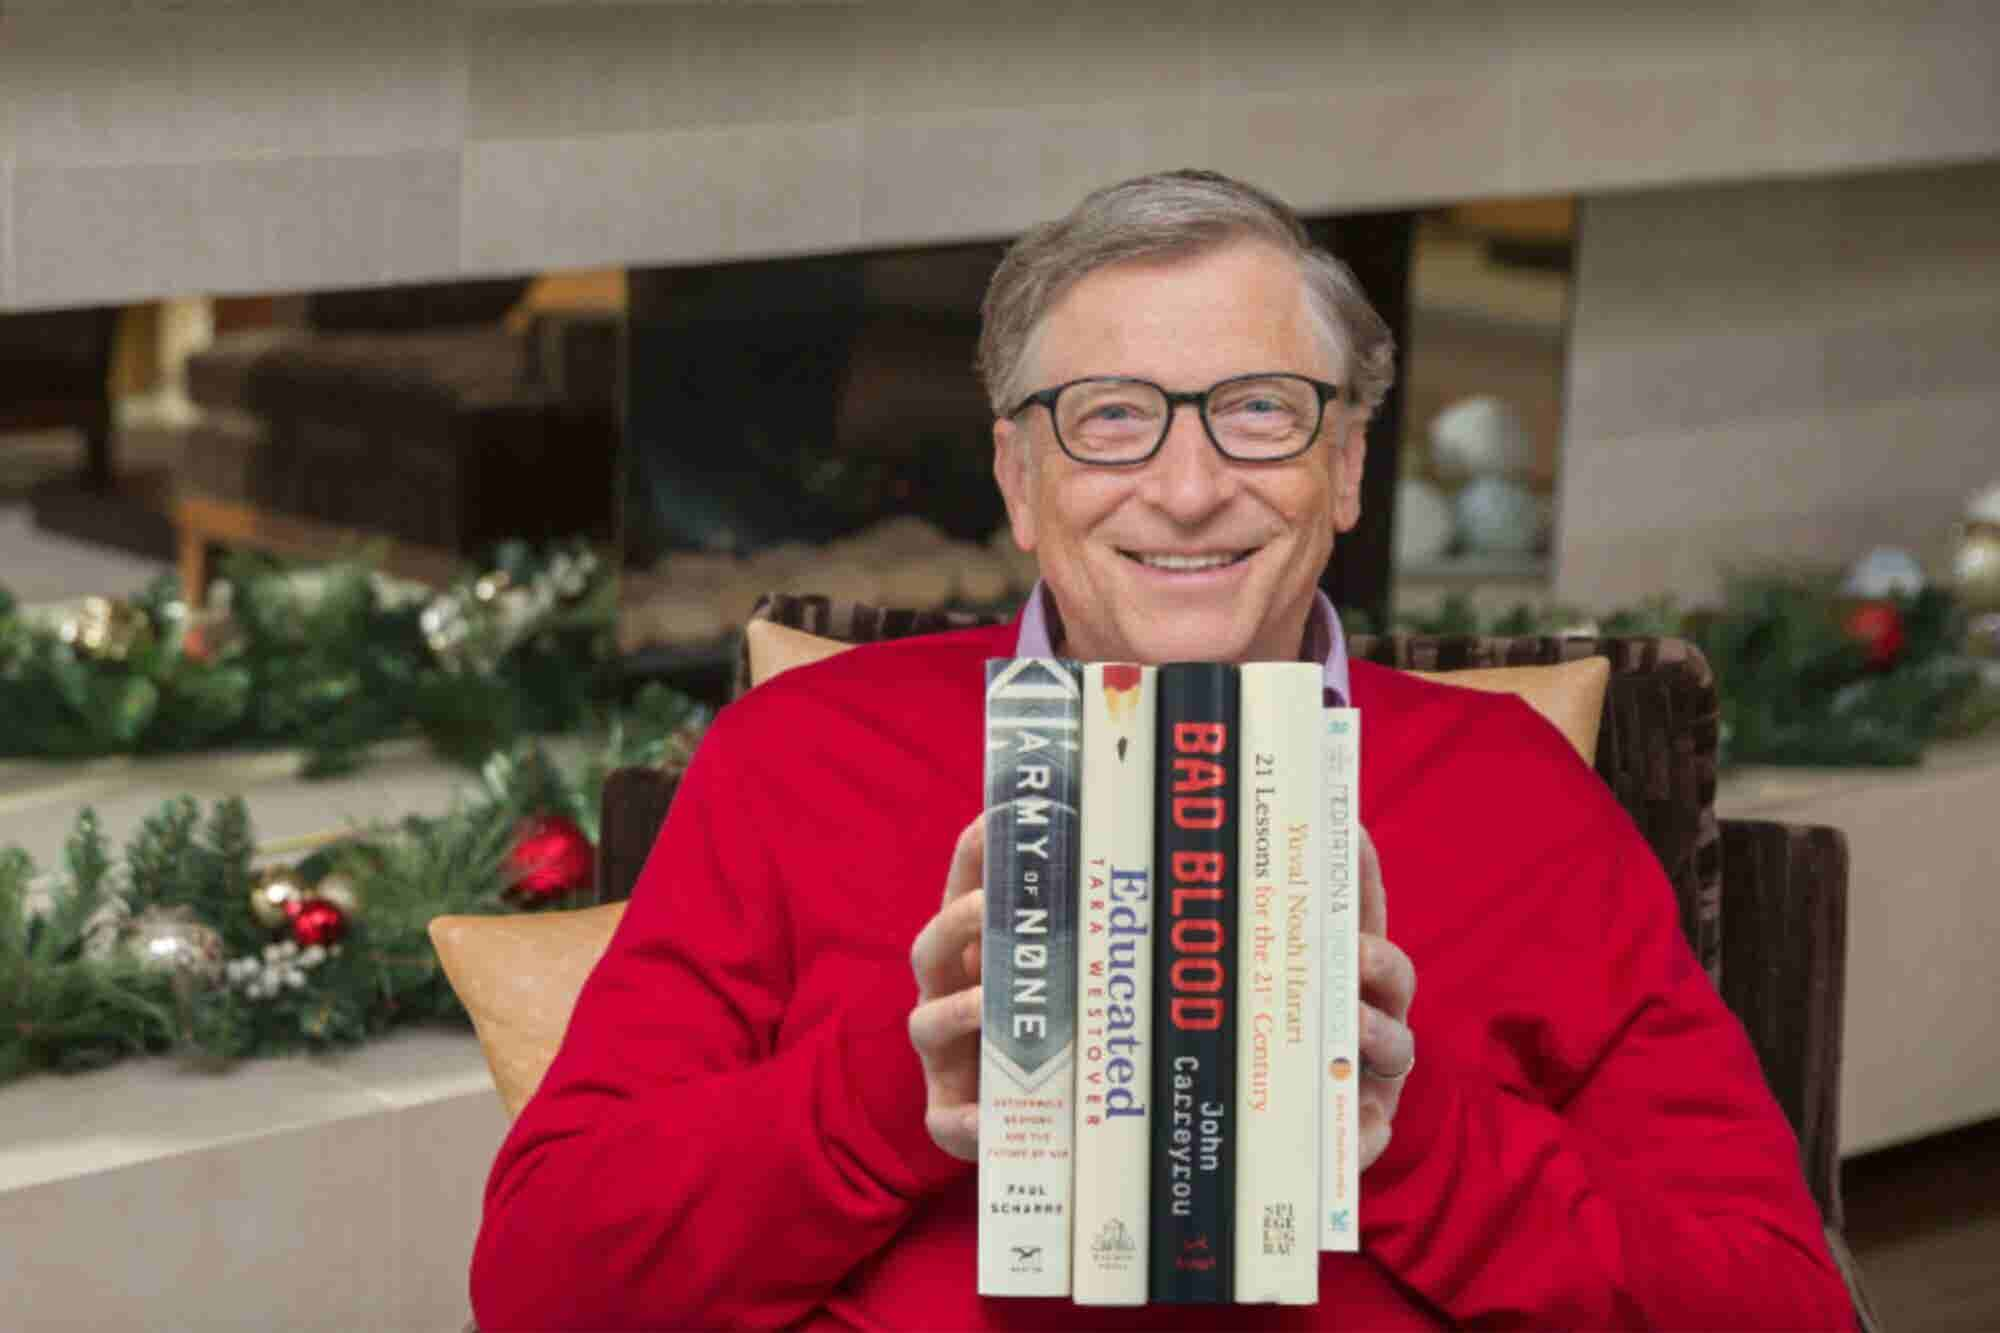 Bill Gates's Top 5 Books to Read and Gift This Year